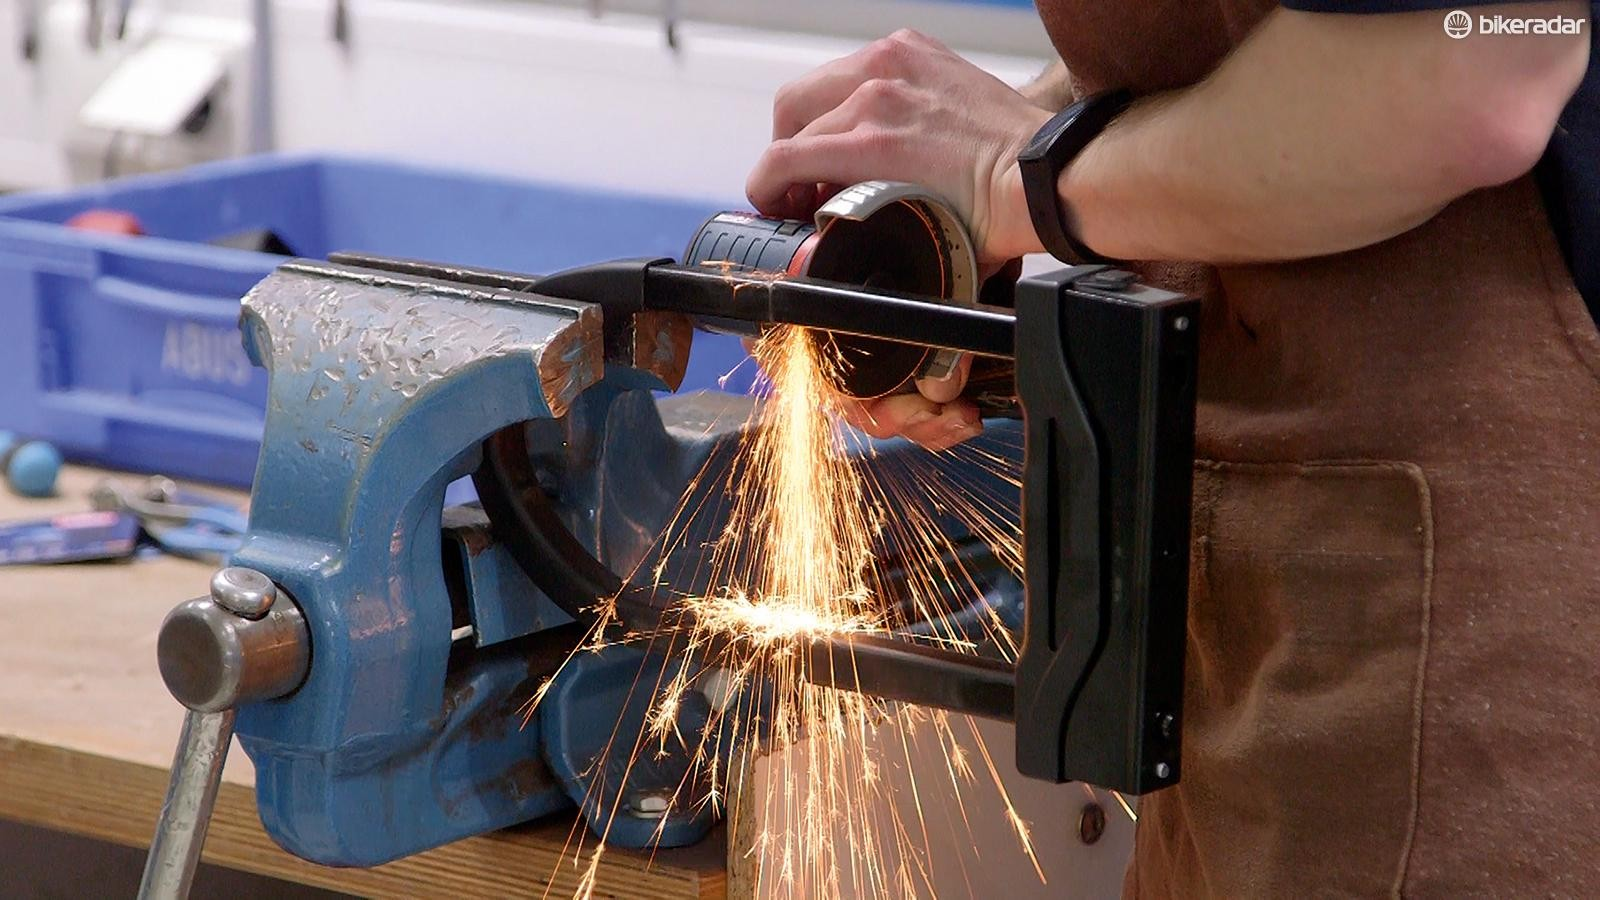 Sparks flew as the angle grinder was introduced